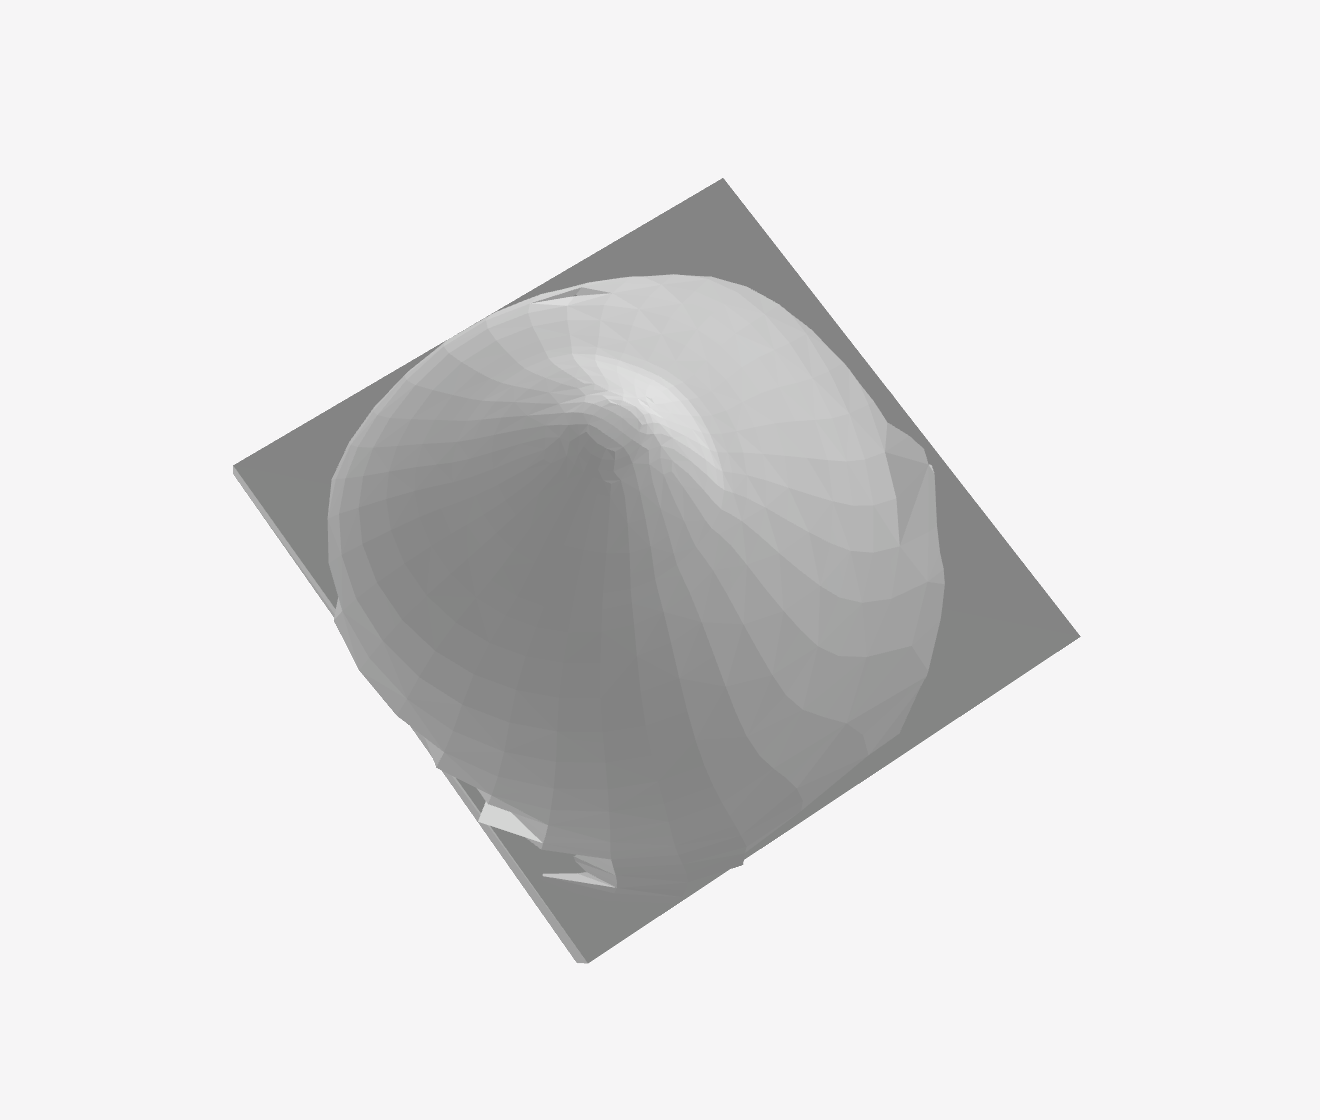 Capture d'écran 2018-10-16 à 10.30.02.png Download STL file TITJOB SILICONE CHEST • 3D printing object, AramisFernandez